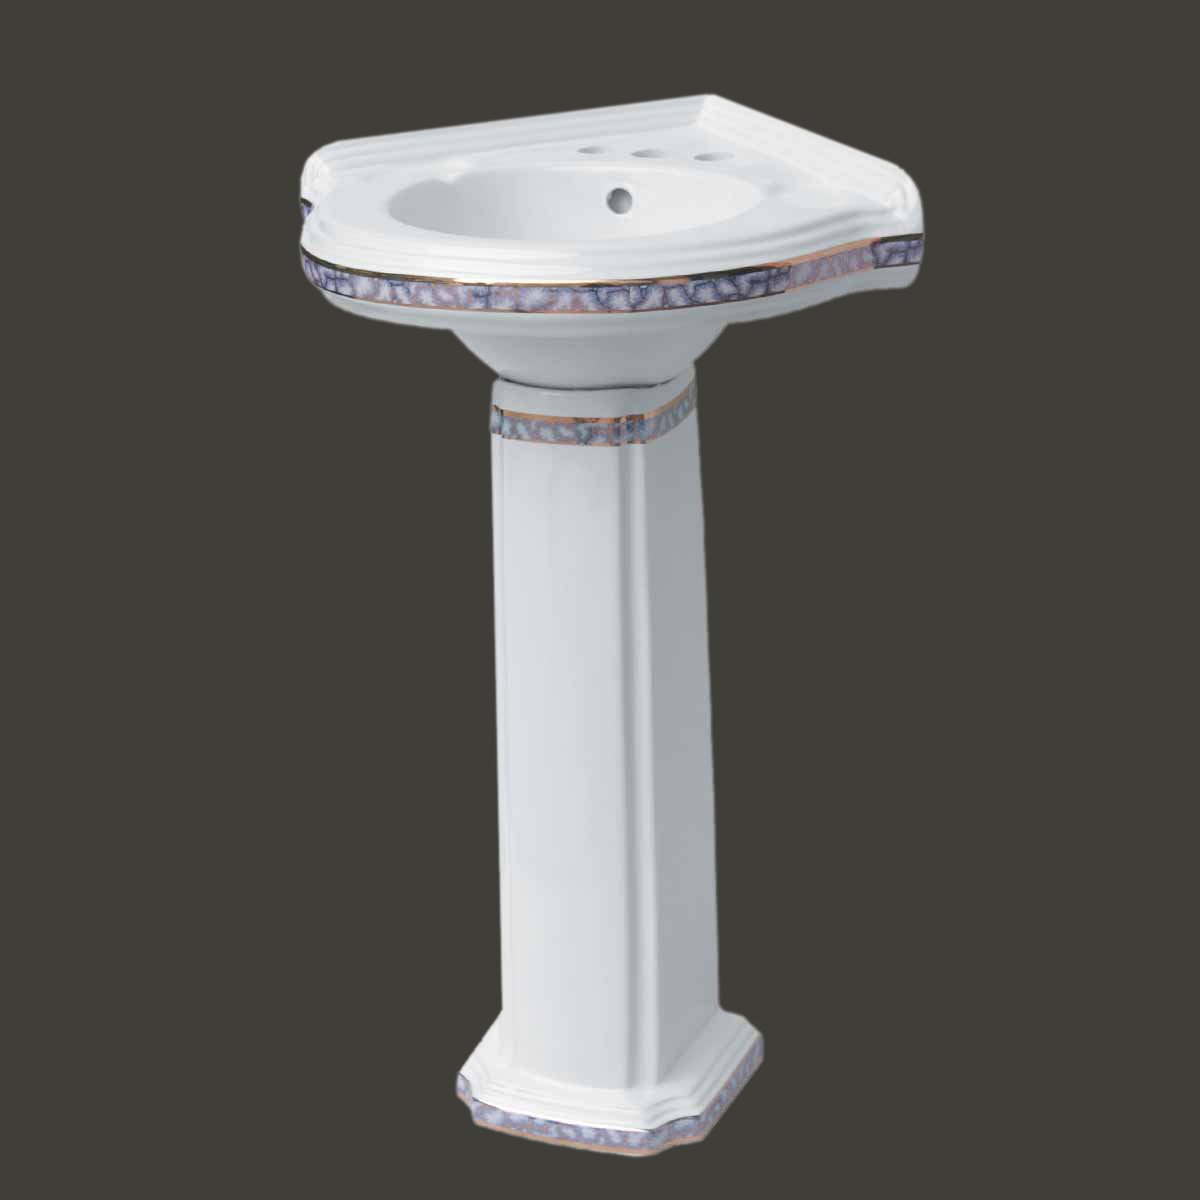 Bathroom Corner Pedestal Sink White China Gold Trim